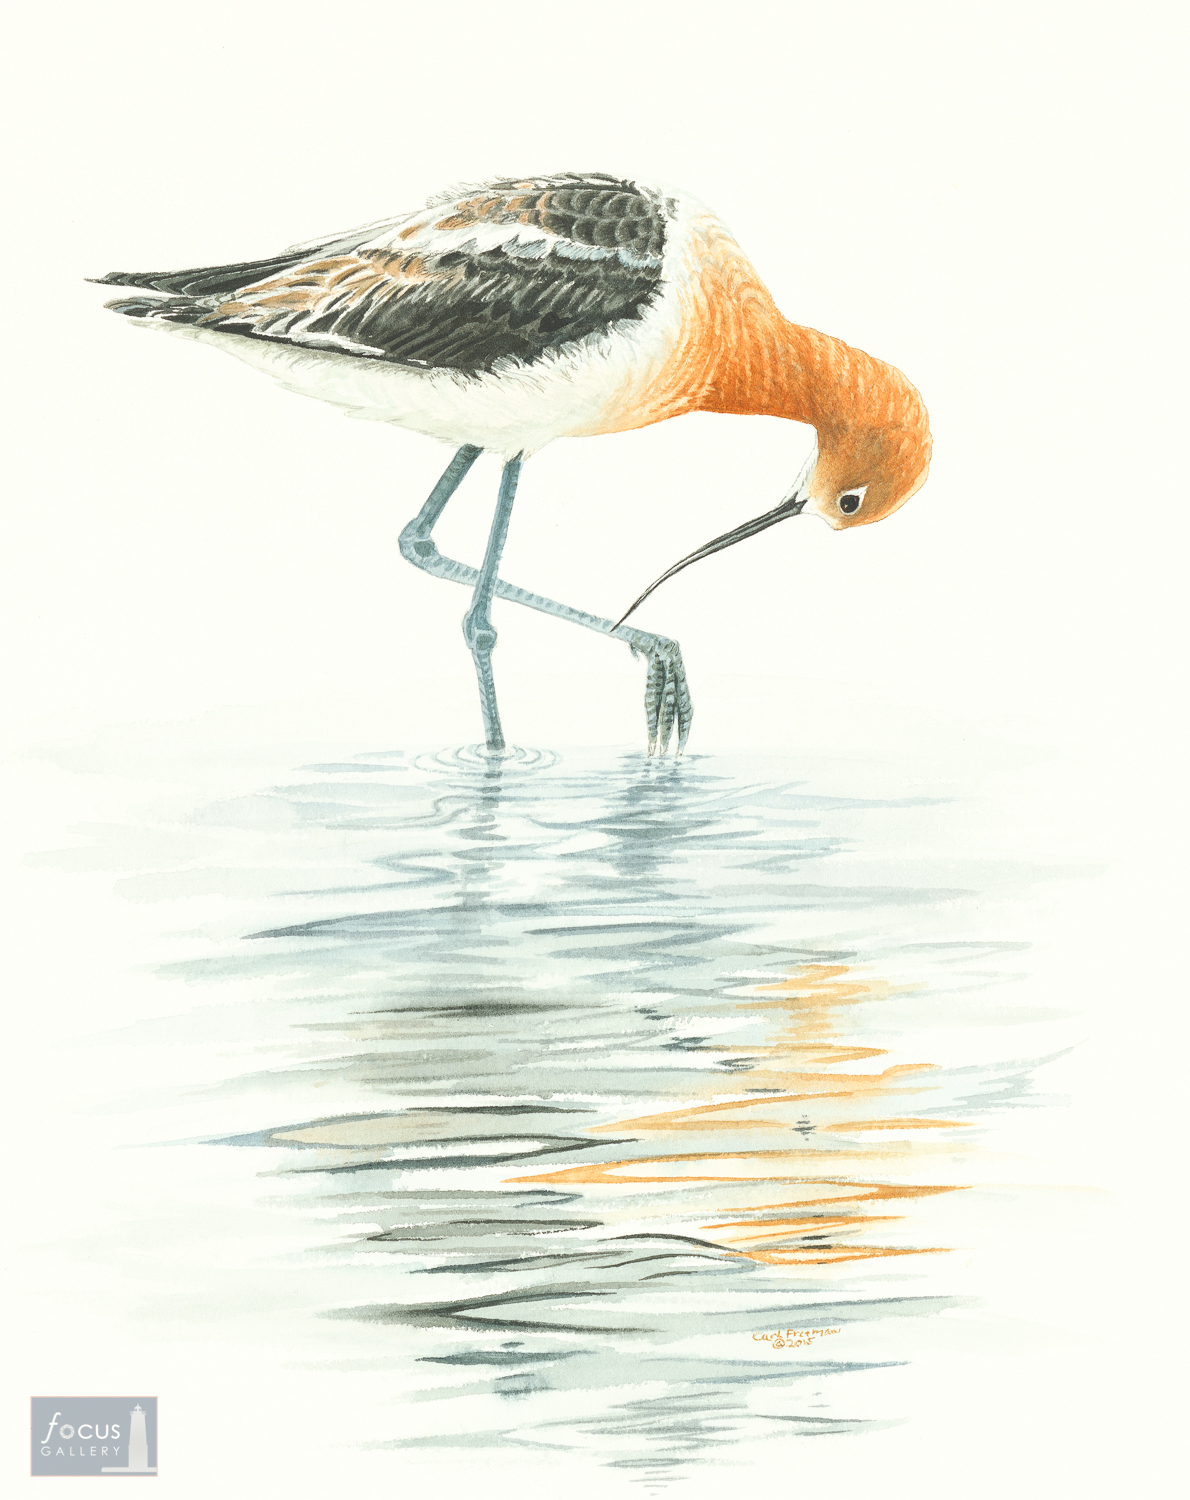 Original watercolor painting of an Avocet shorebird and its reflection.